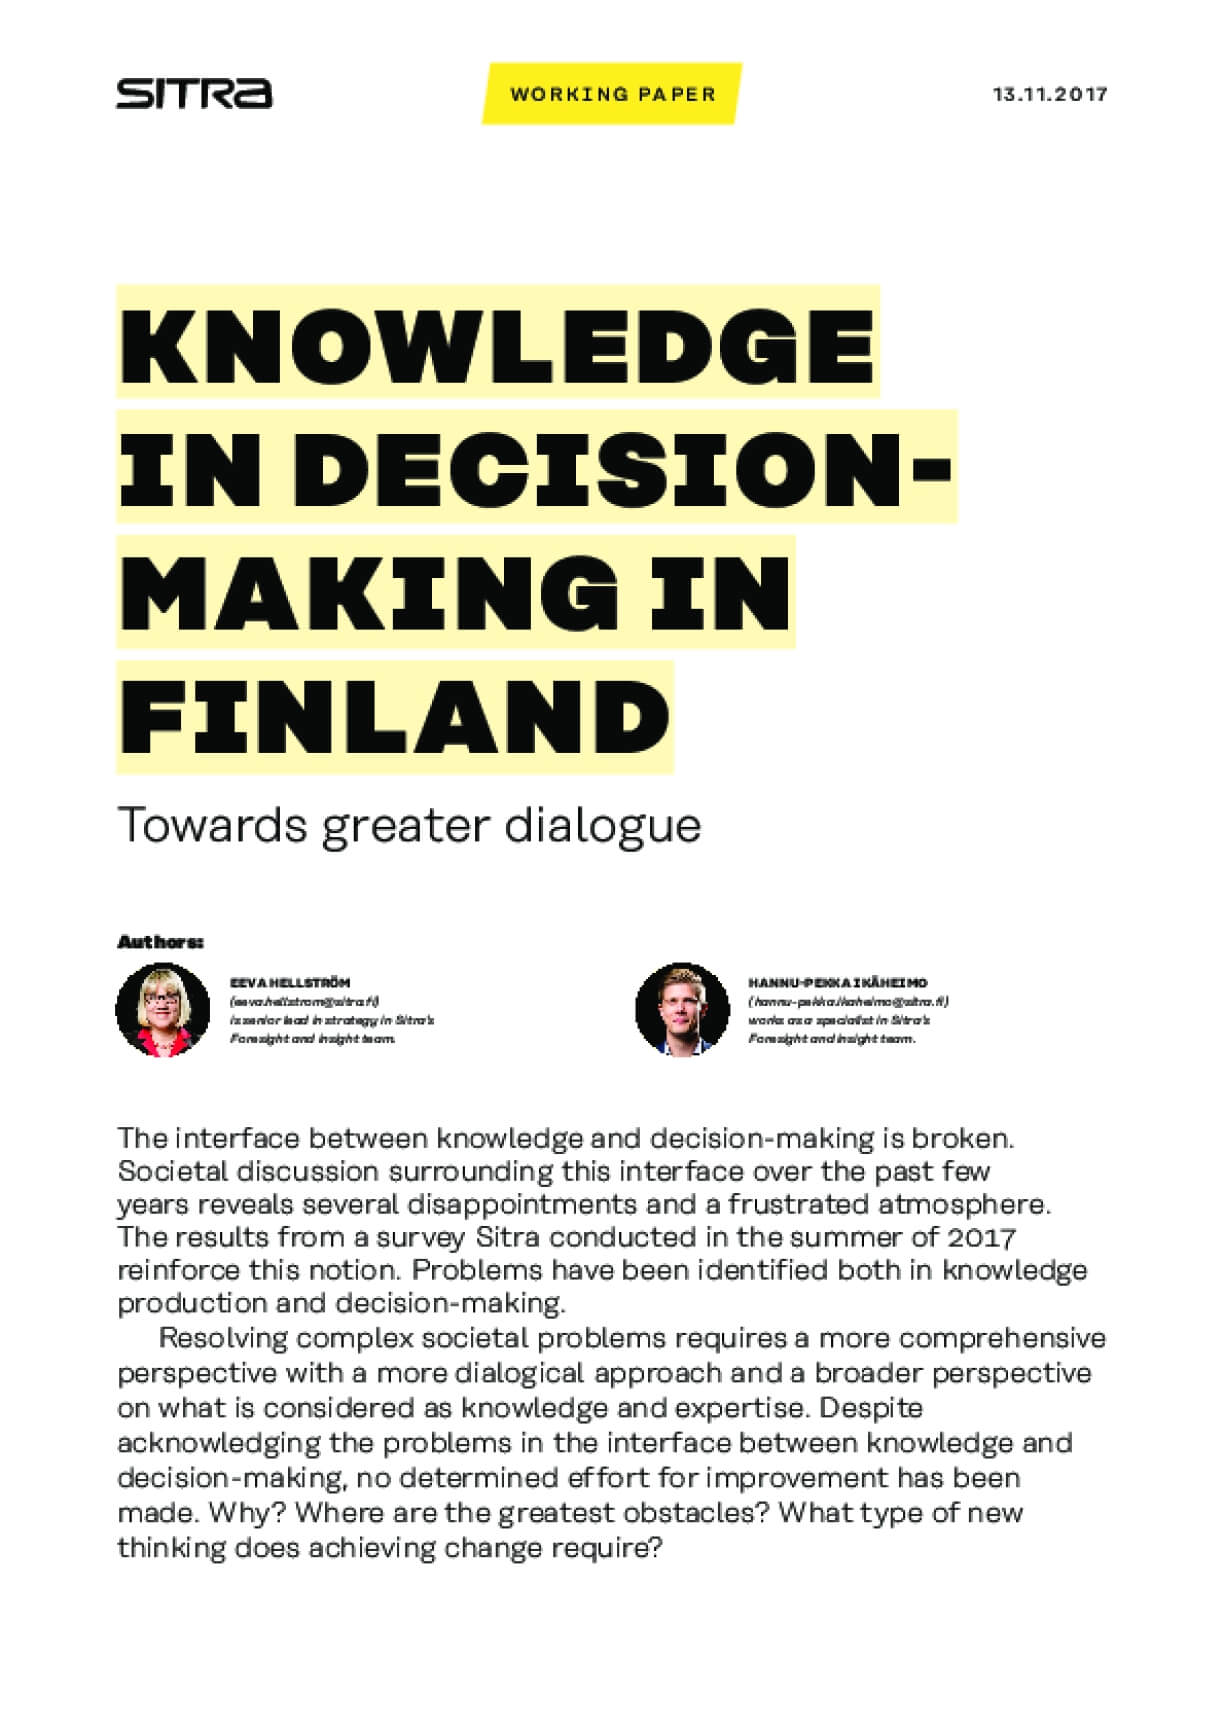 Knowledge in Decisionmaking in Finland - Towards geater dialogue